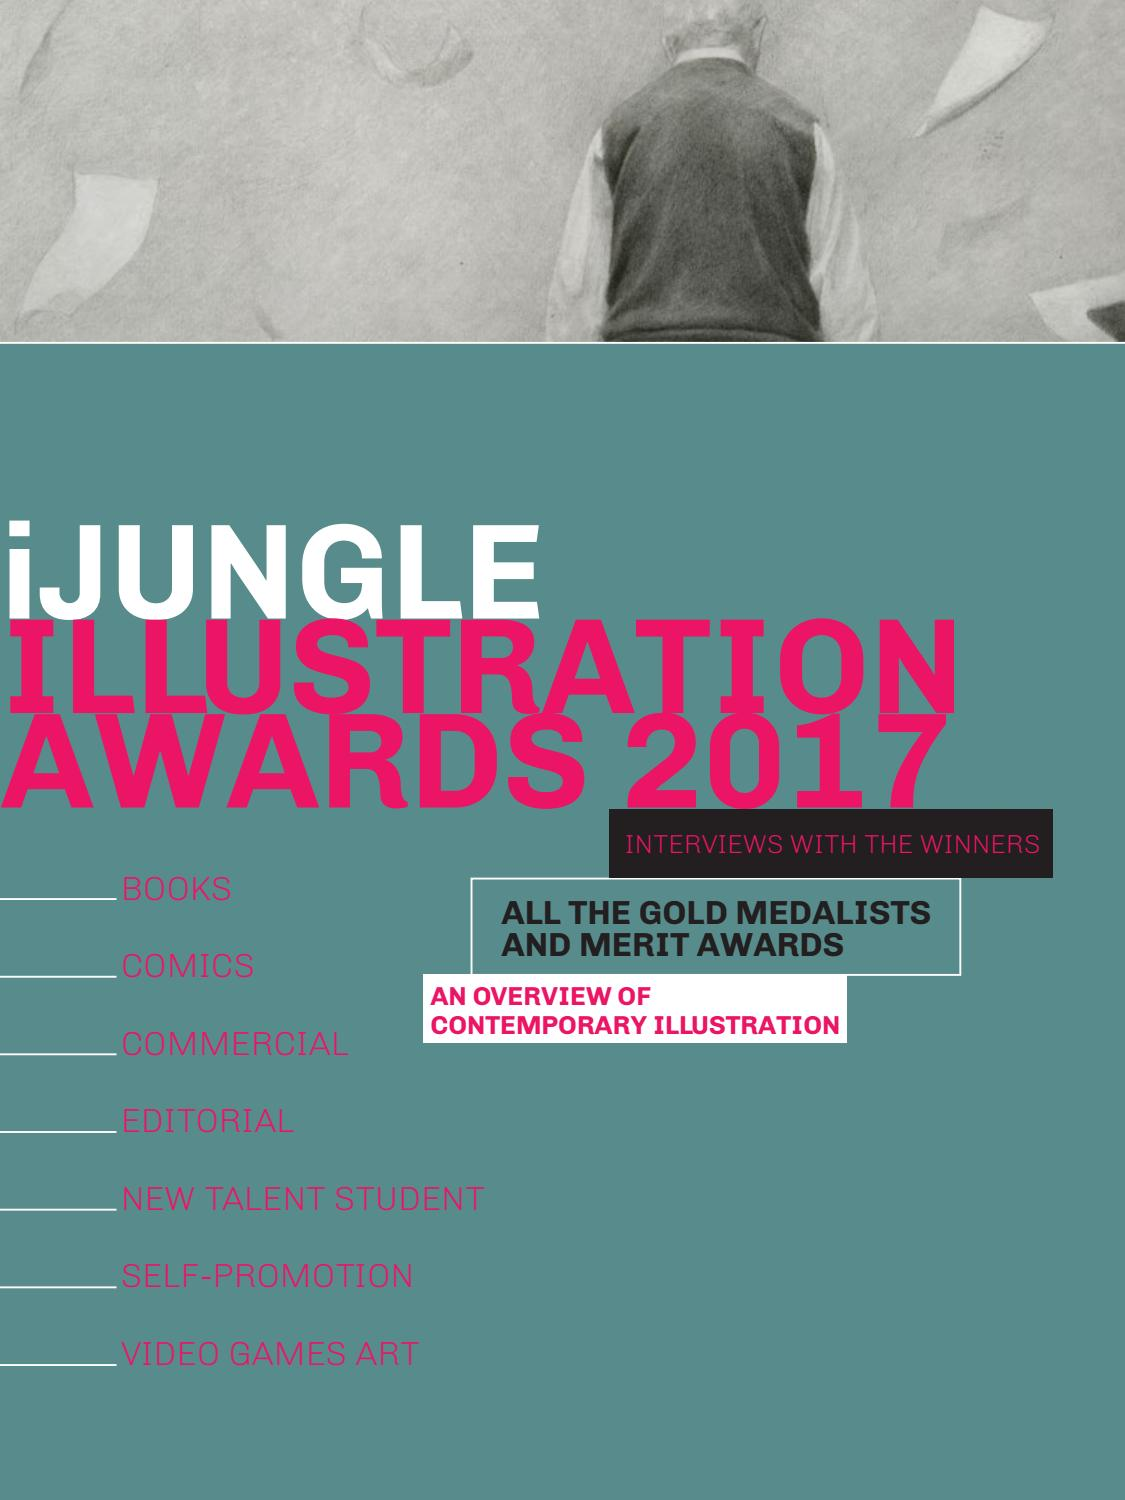 2017 ijungle illustration annual by ijungleawards - issuu